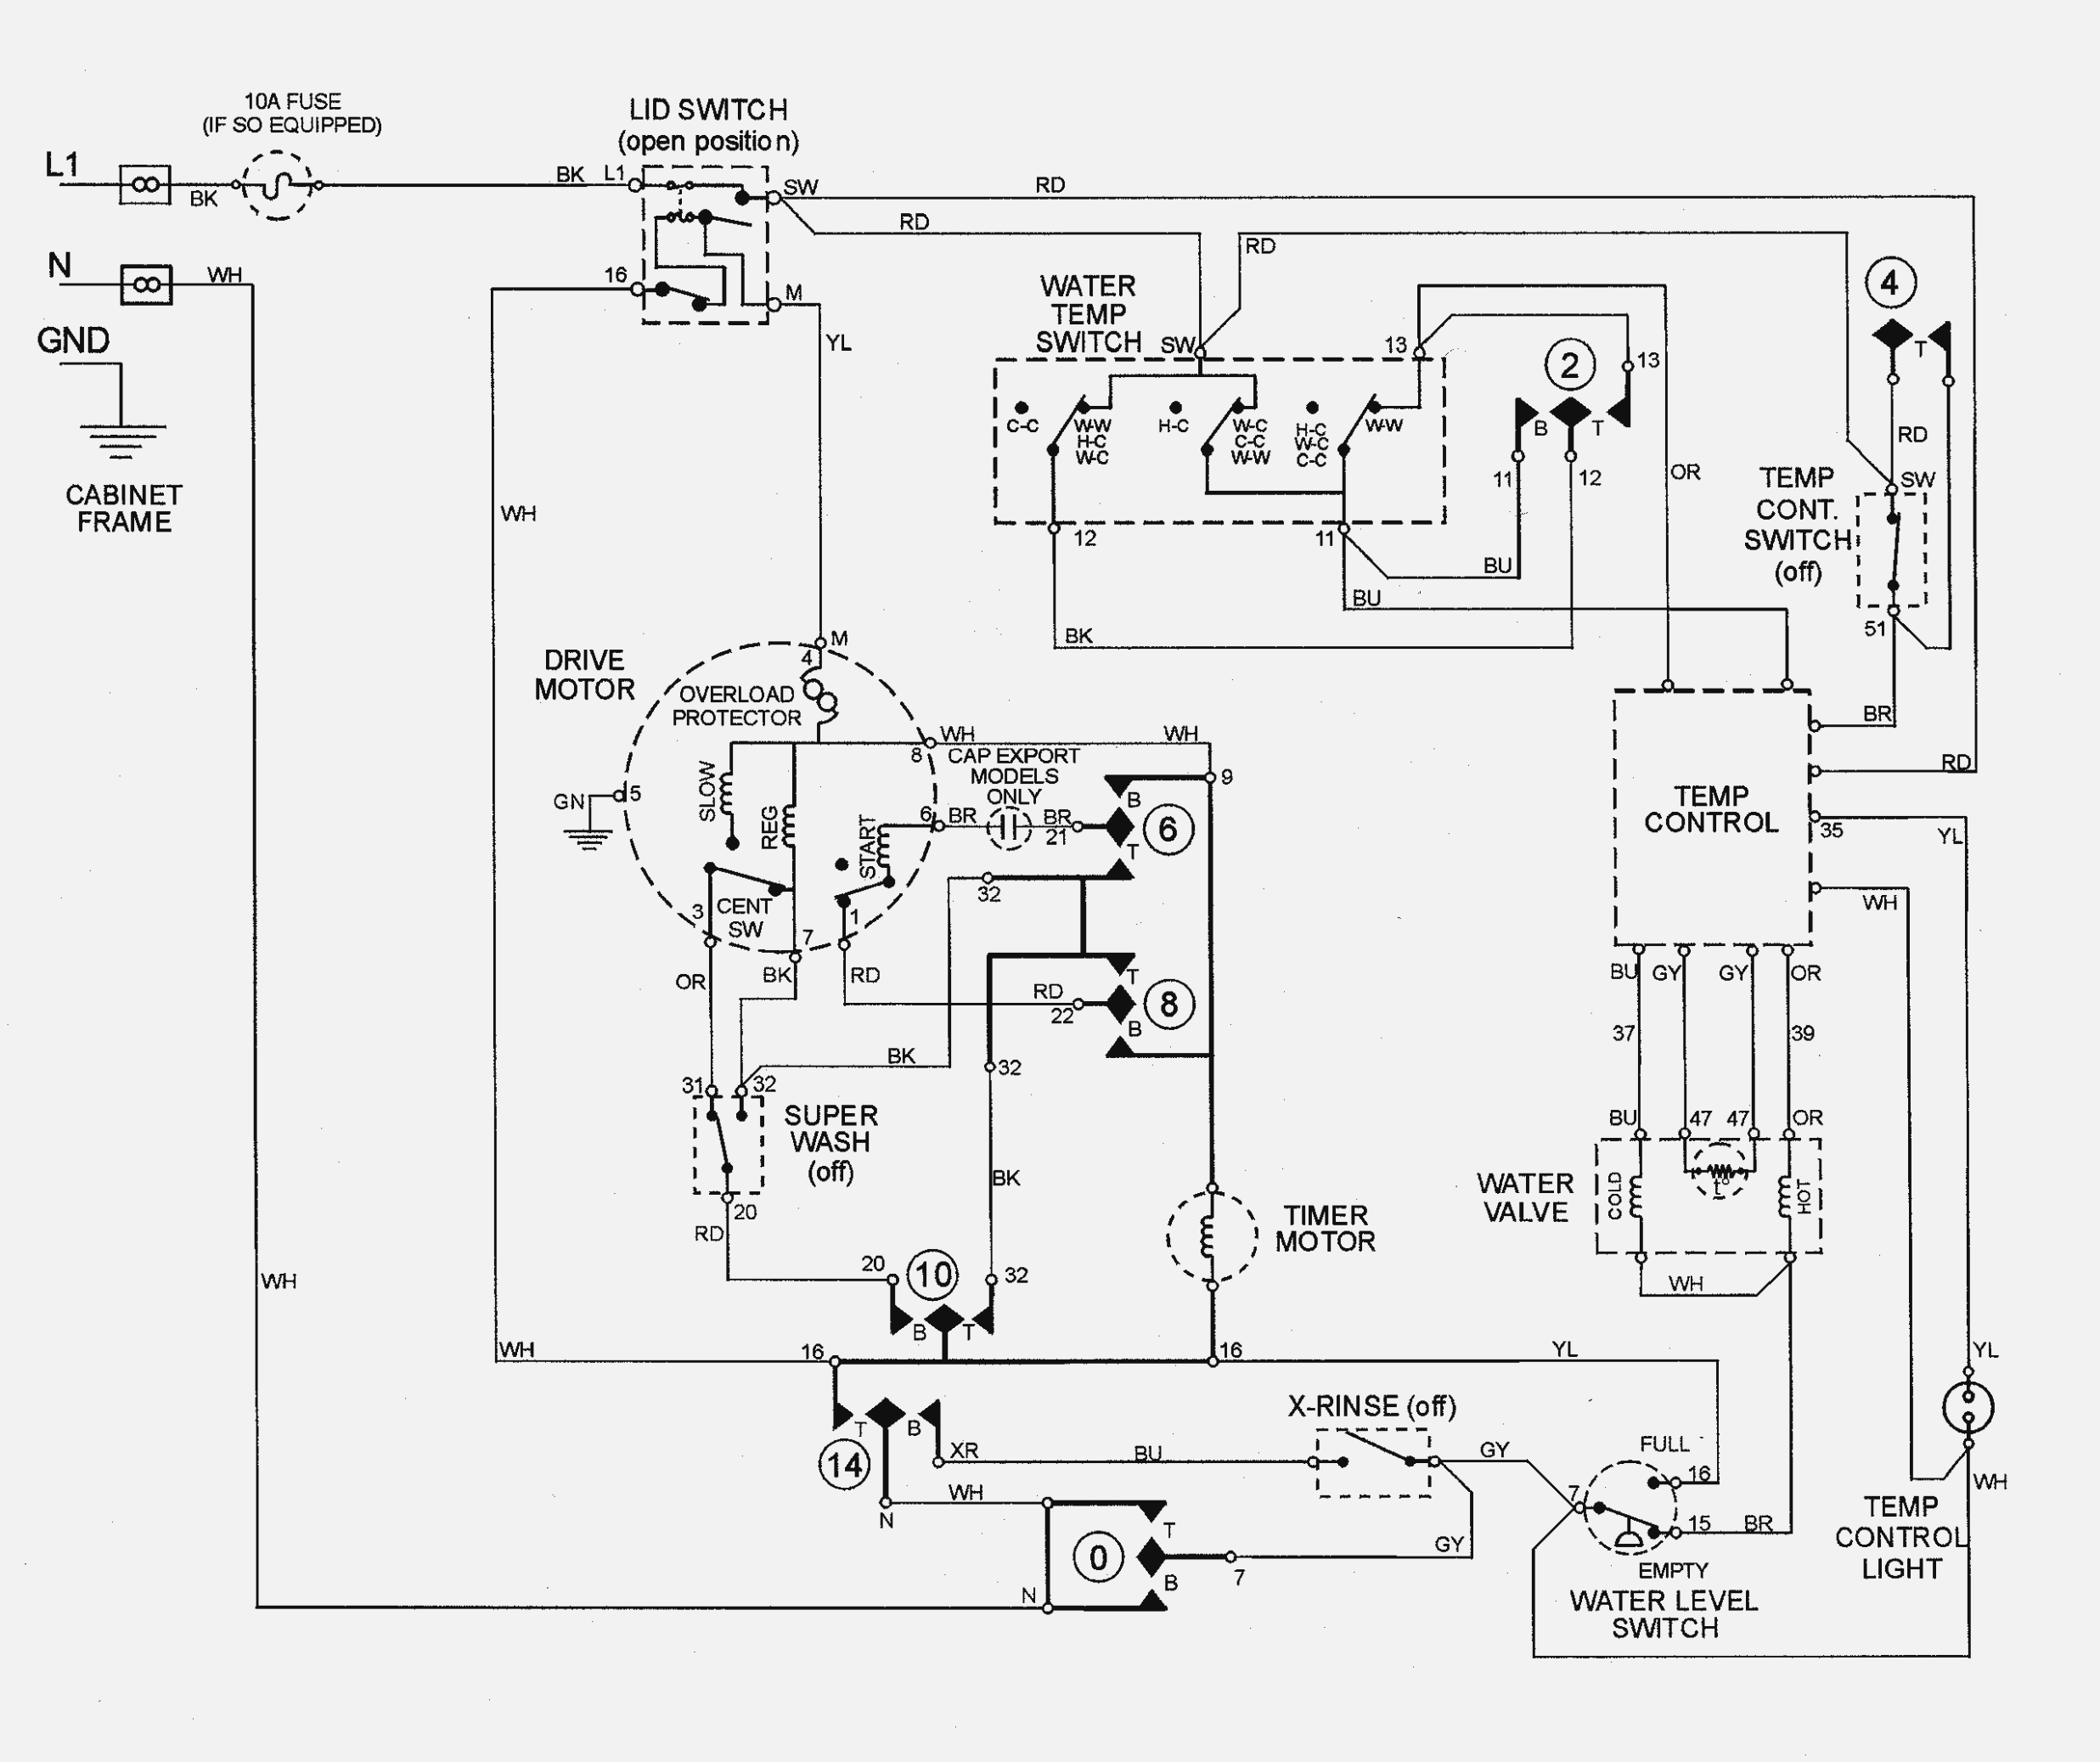 13 Wiring Diagram Of Washing Machine With Dryer References